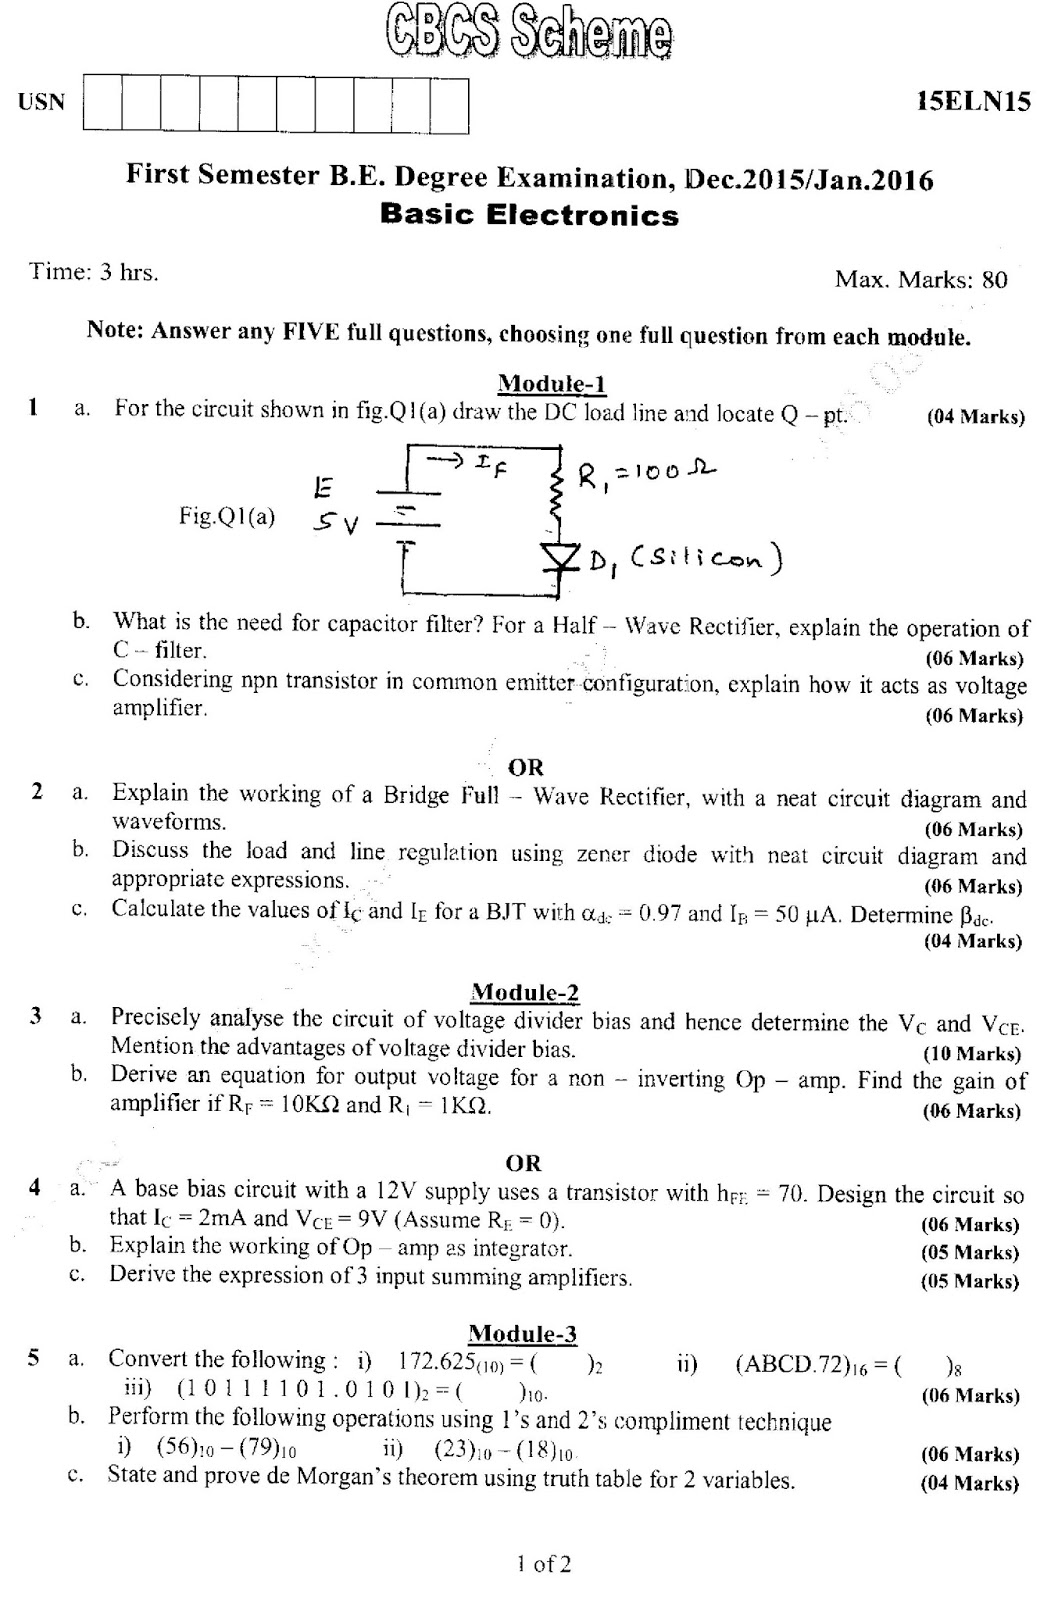 Basic Electronics Model Question Paper 2017 - Circuit Diagram Images